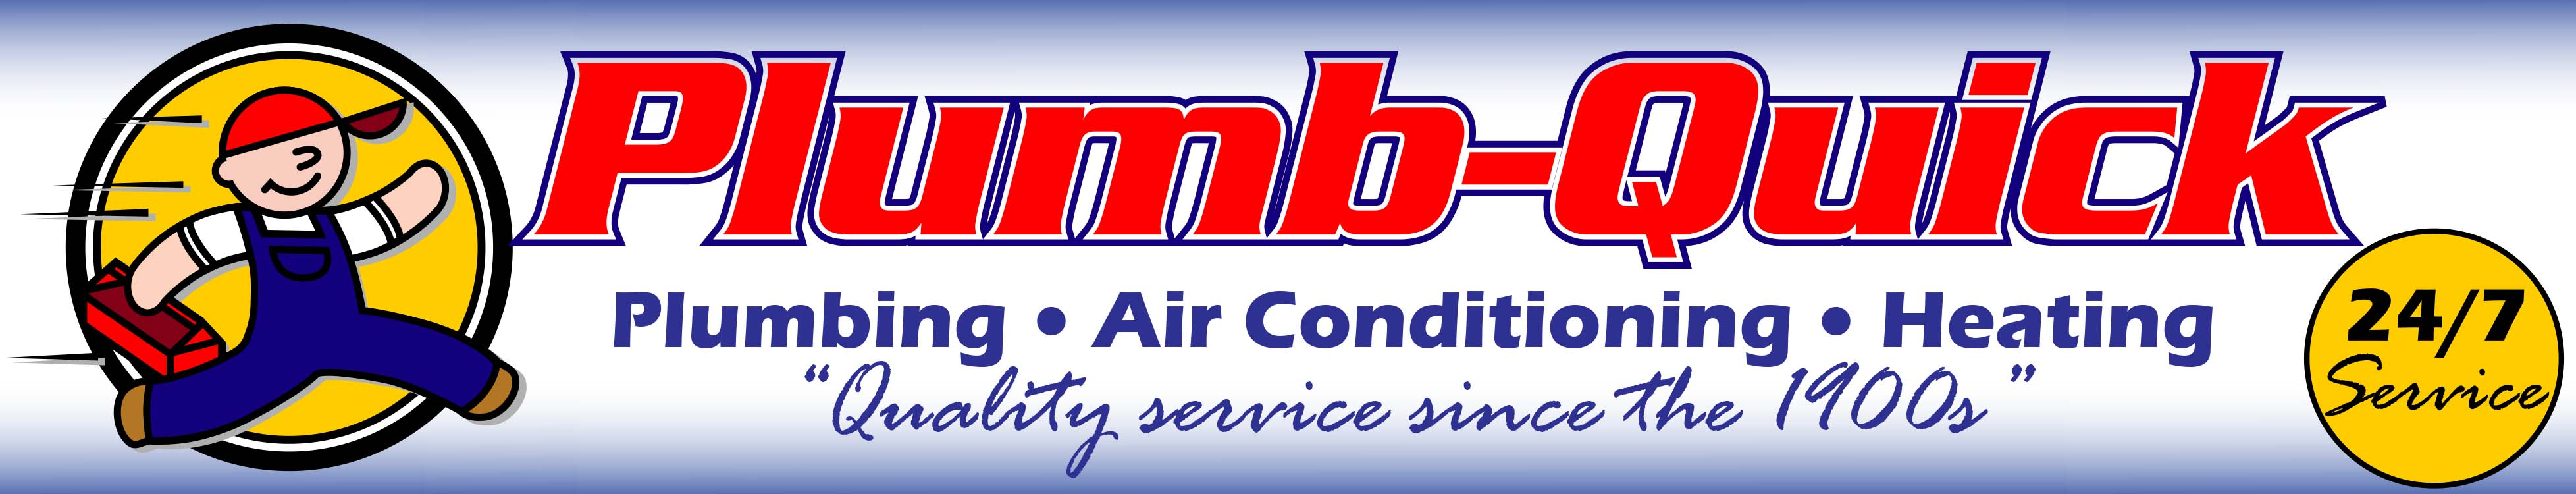 For Plumbing & HVAC Service Call: (512) 246-7440